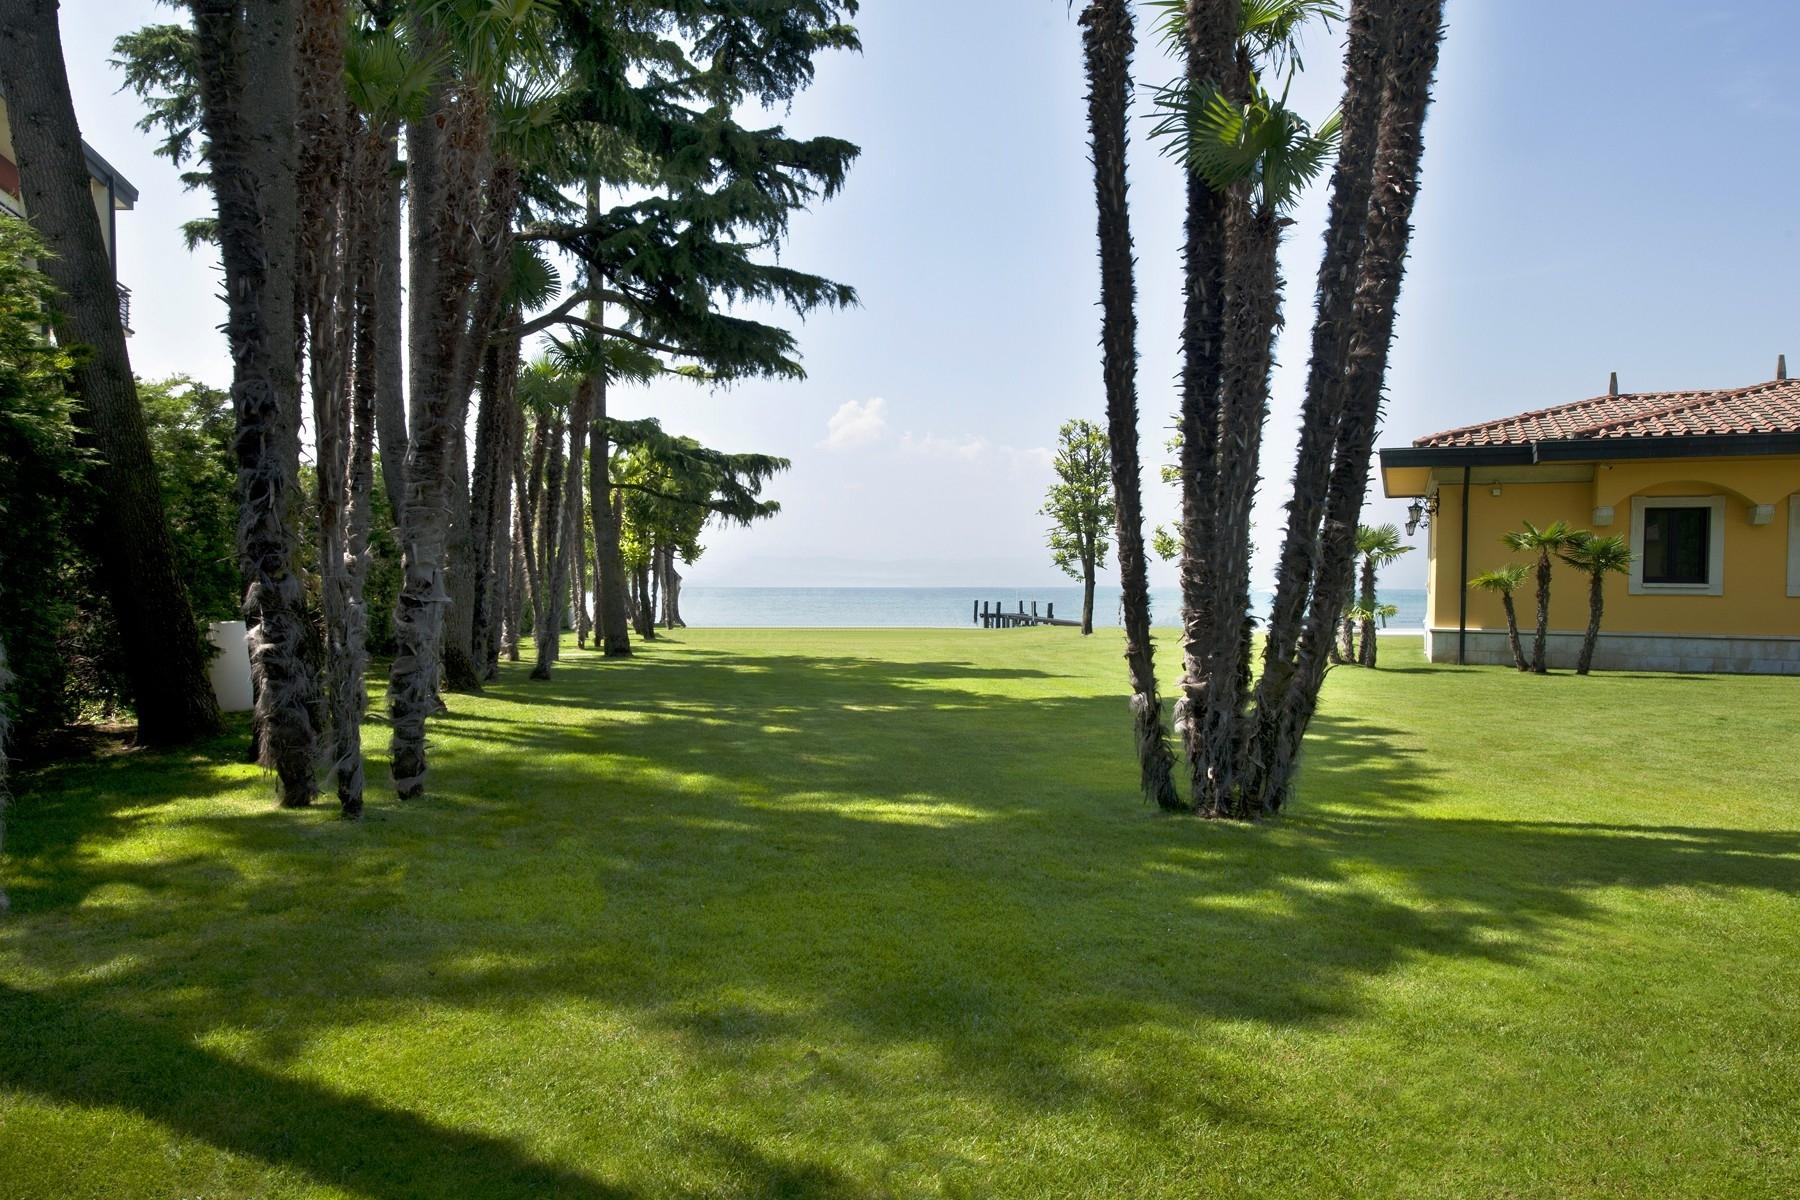 One of a kind Pieds dans l'eau villa with beach and dock in Sirmione - 10